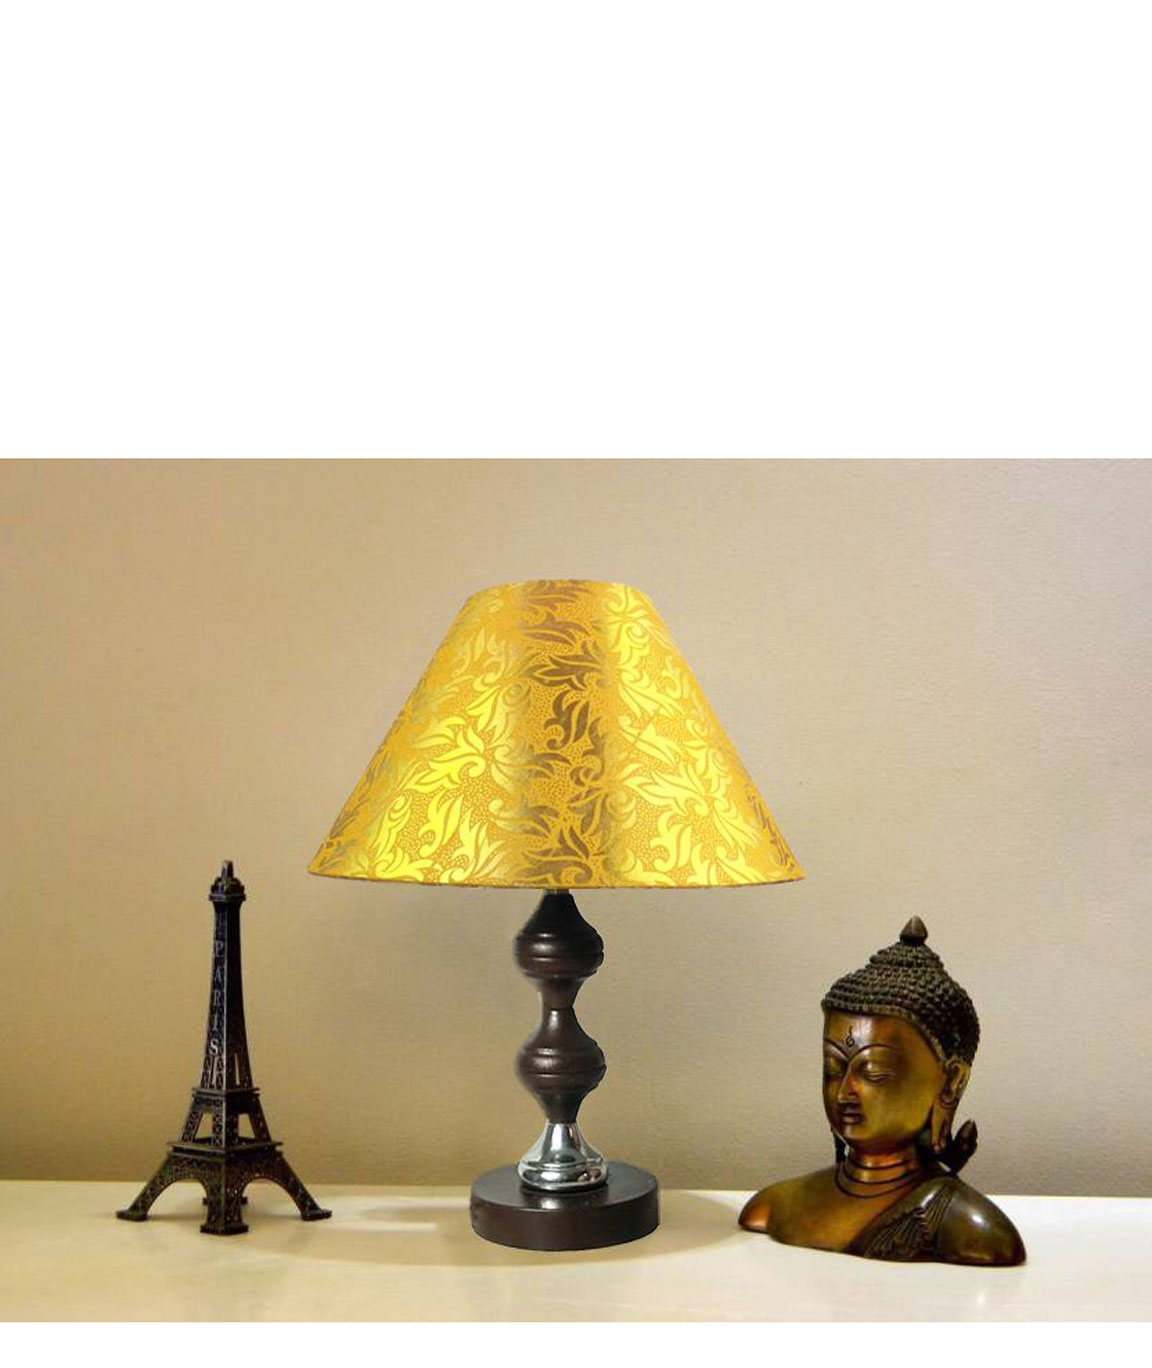 RDC Brown Silver Stand Table Lamp with 10 Inches Round Yellow with Golden Designer Lamp Shade